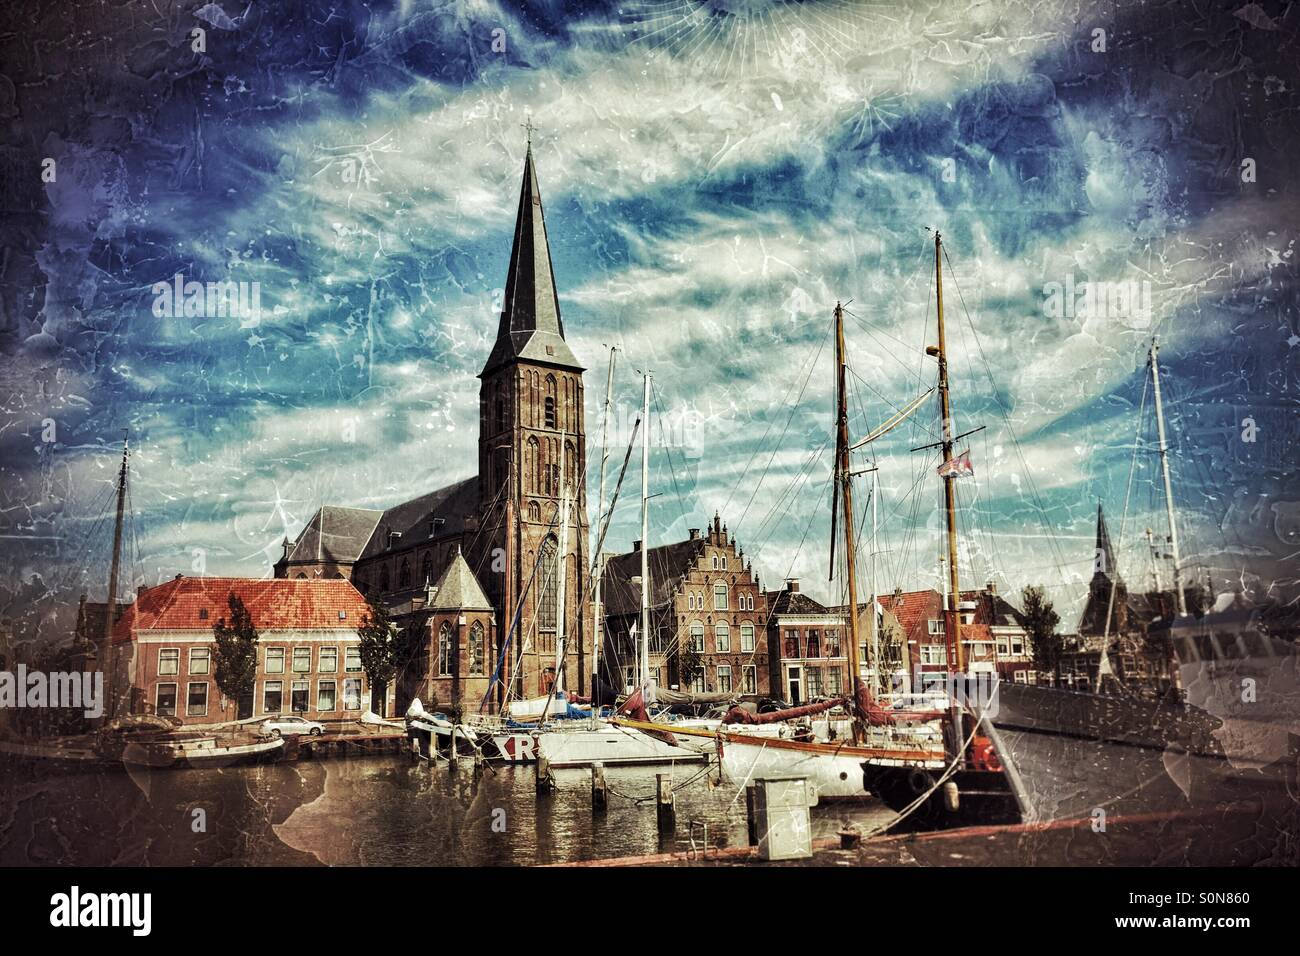 Port with houses and a church. Port with characteristic old Dutch buildings and a church. (Picture edited heavily) Stock Photo